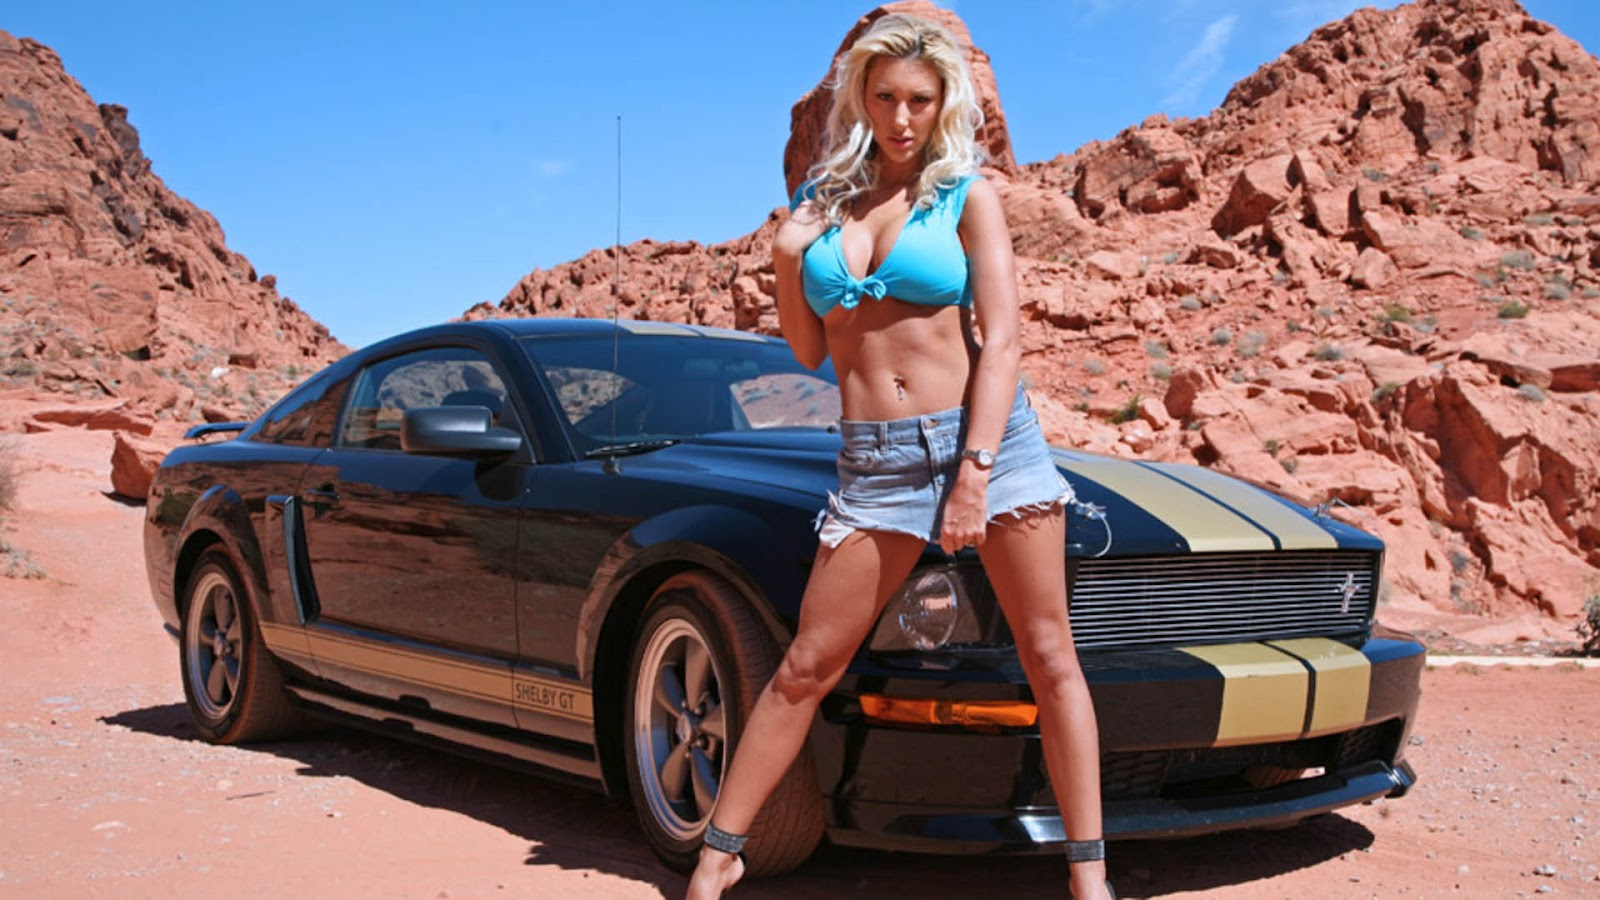 Ford hot photo - 10